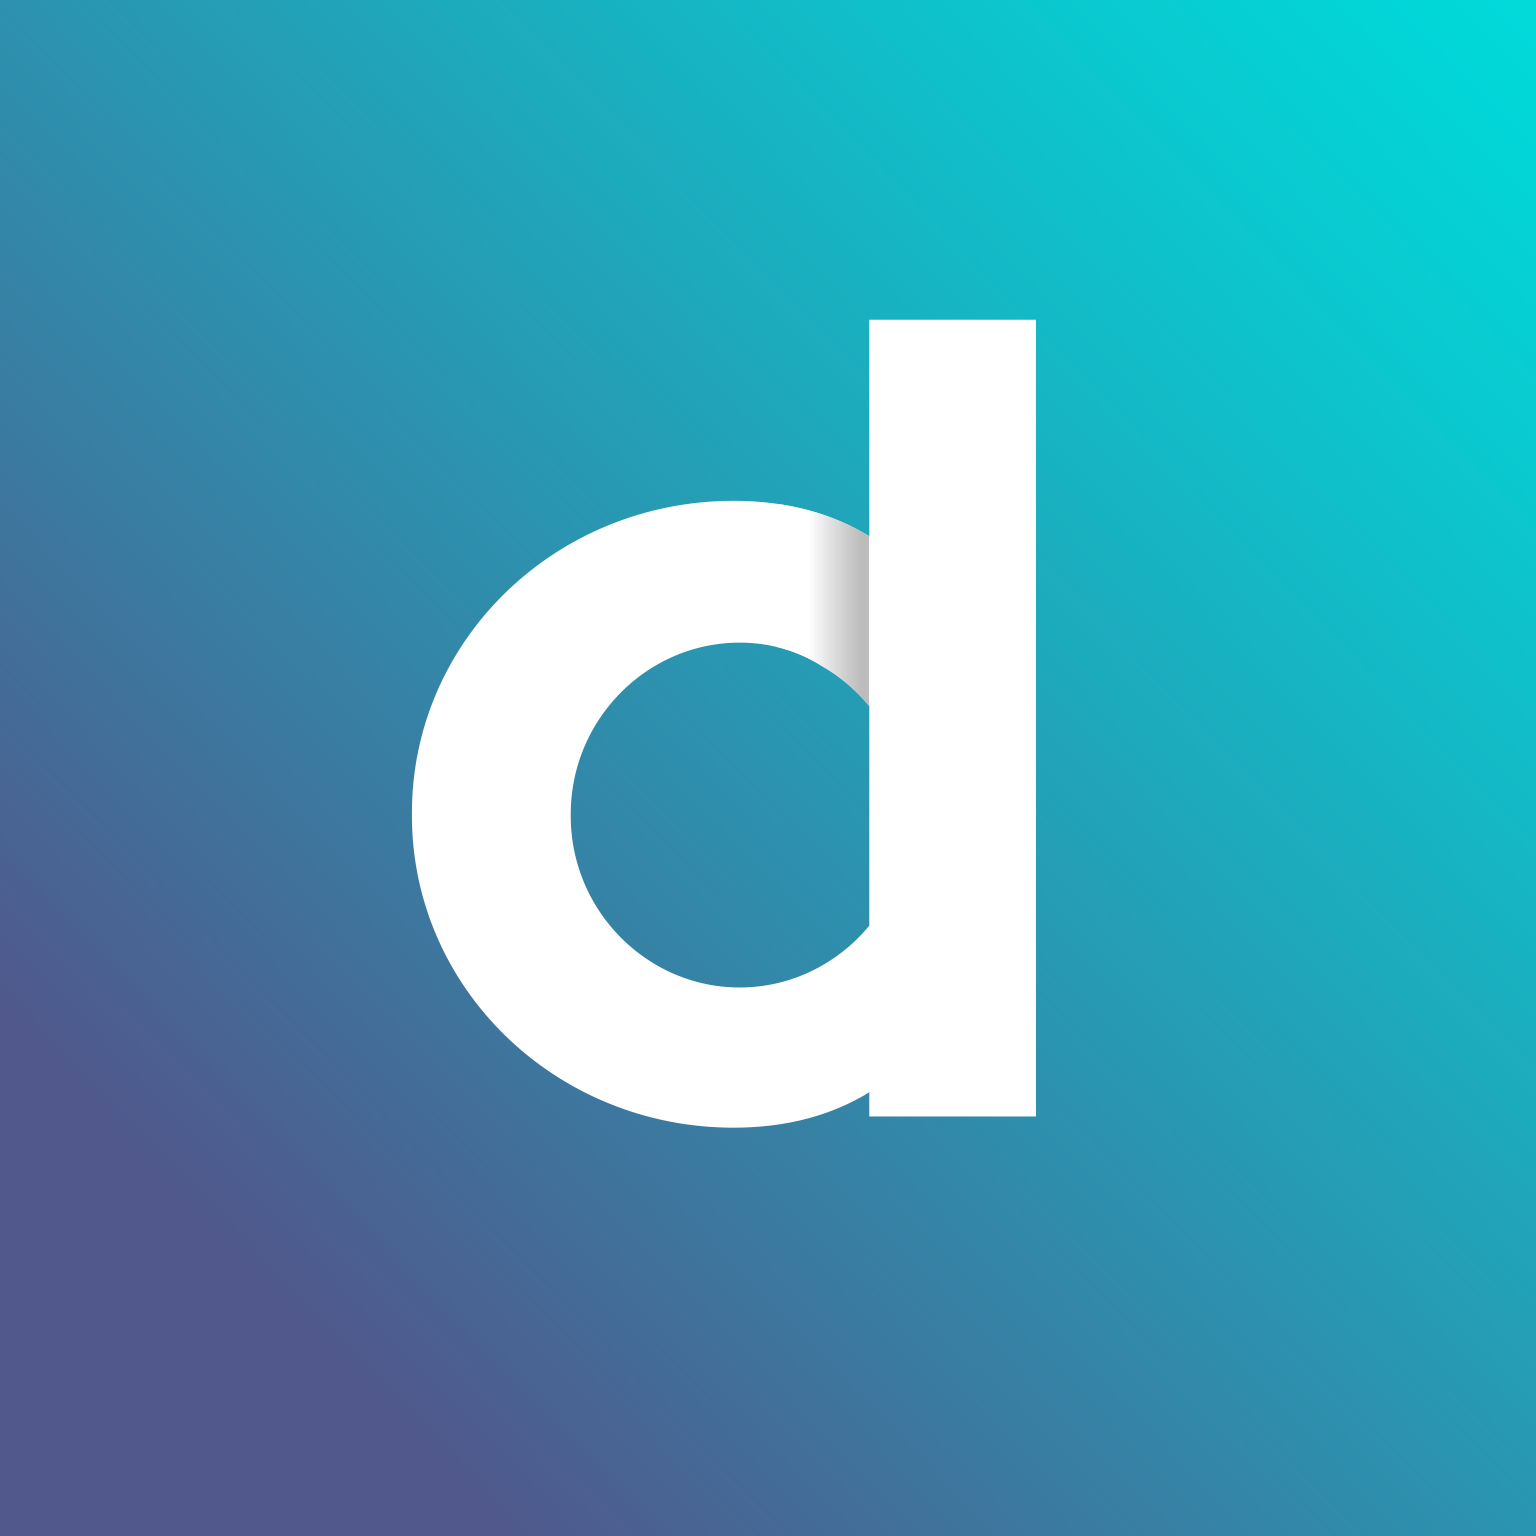 Community & Content Manager, UK - Tech Startup Jobs